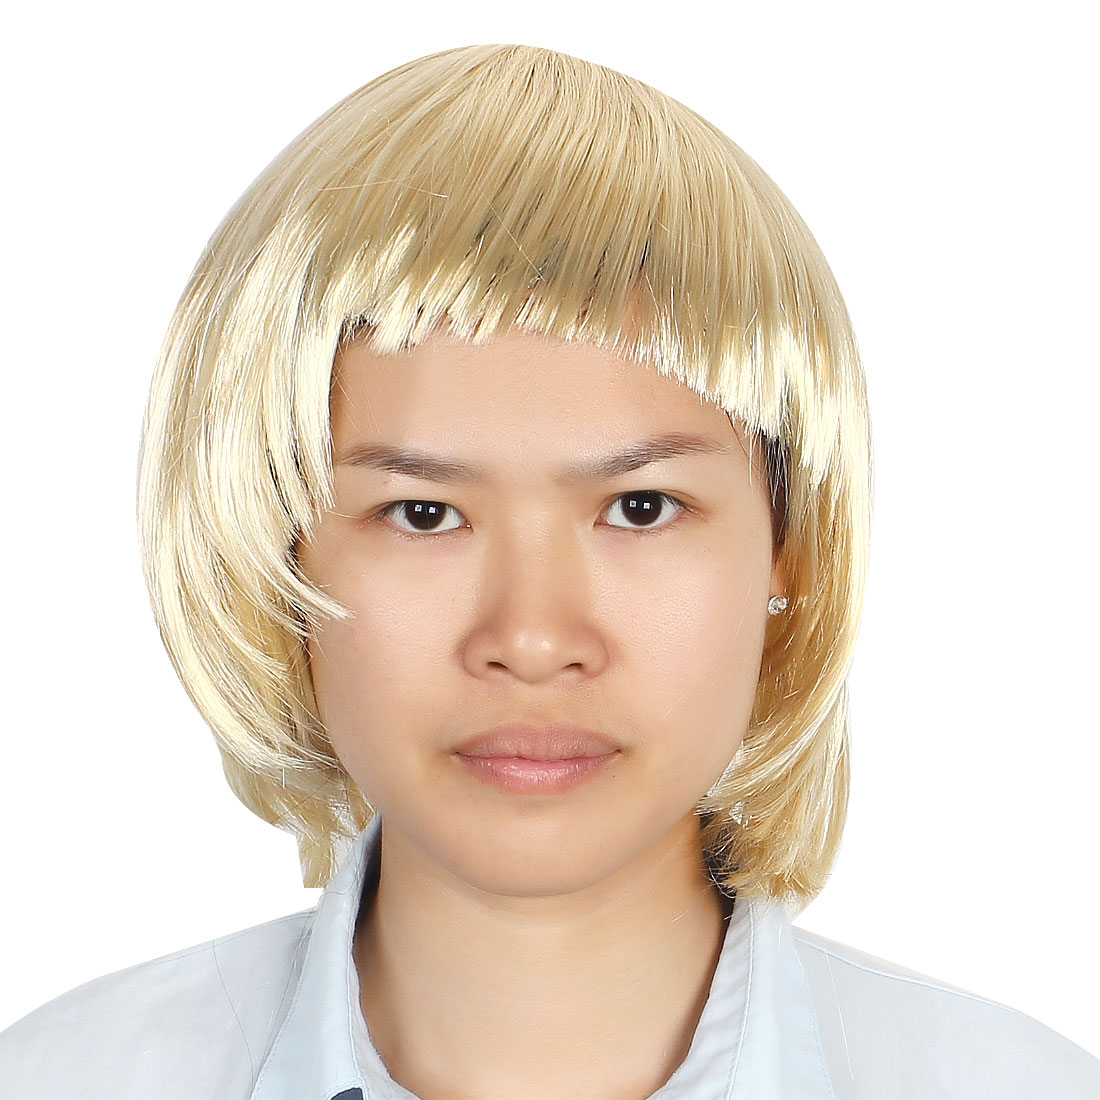 Ladies Woman Short Cut Straight Hairpiece Flat Bangs Hair Play Costume Full Wig Party Khaki